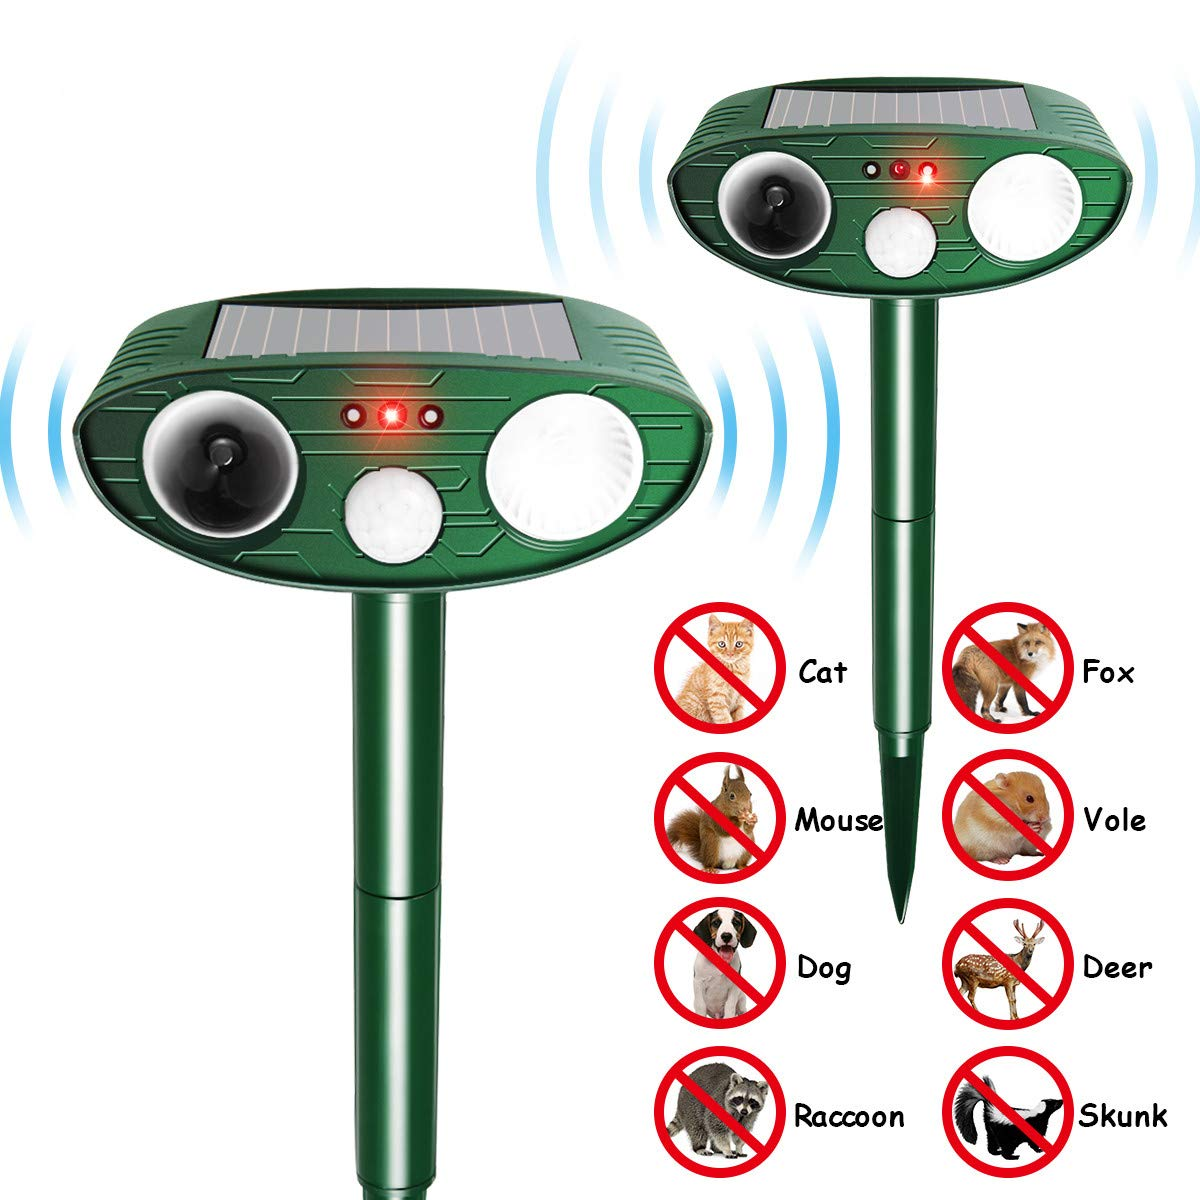 FOCUSPET Animal Ultrasonic Repellent, Outdoor Solar Powered Repellent with Motion Sensor Ultrasonic LED Flash Light, Waterproof Farm Garden Yard Repellent for Cats, Dogs,Raccoons,Skunk(2 Pack)